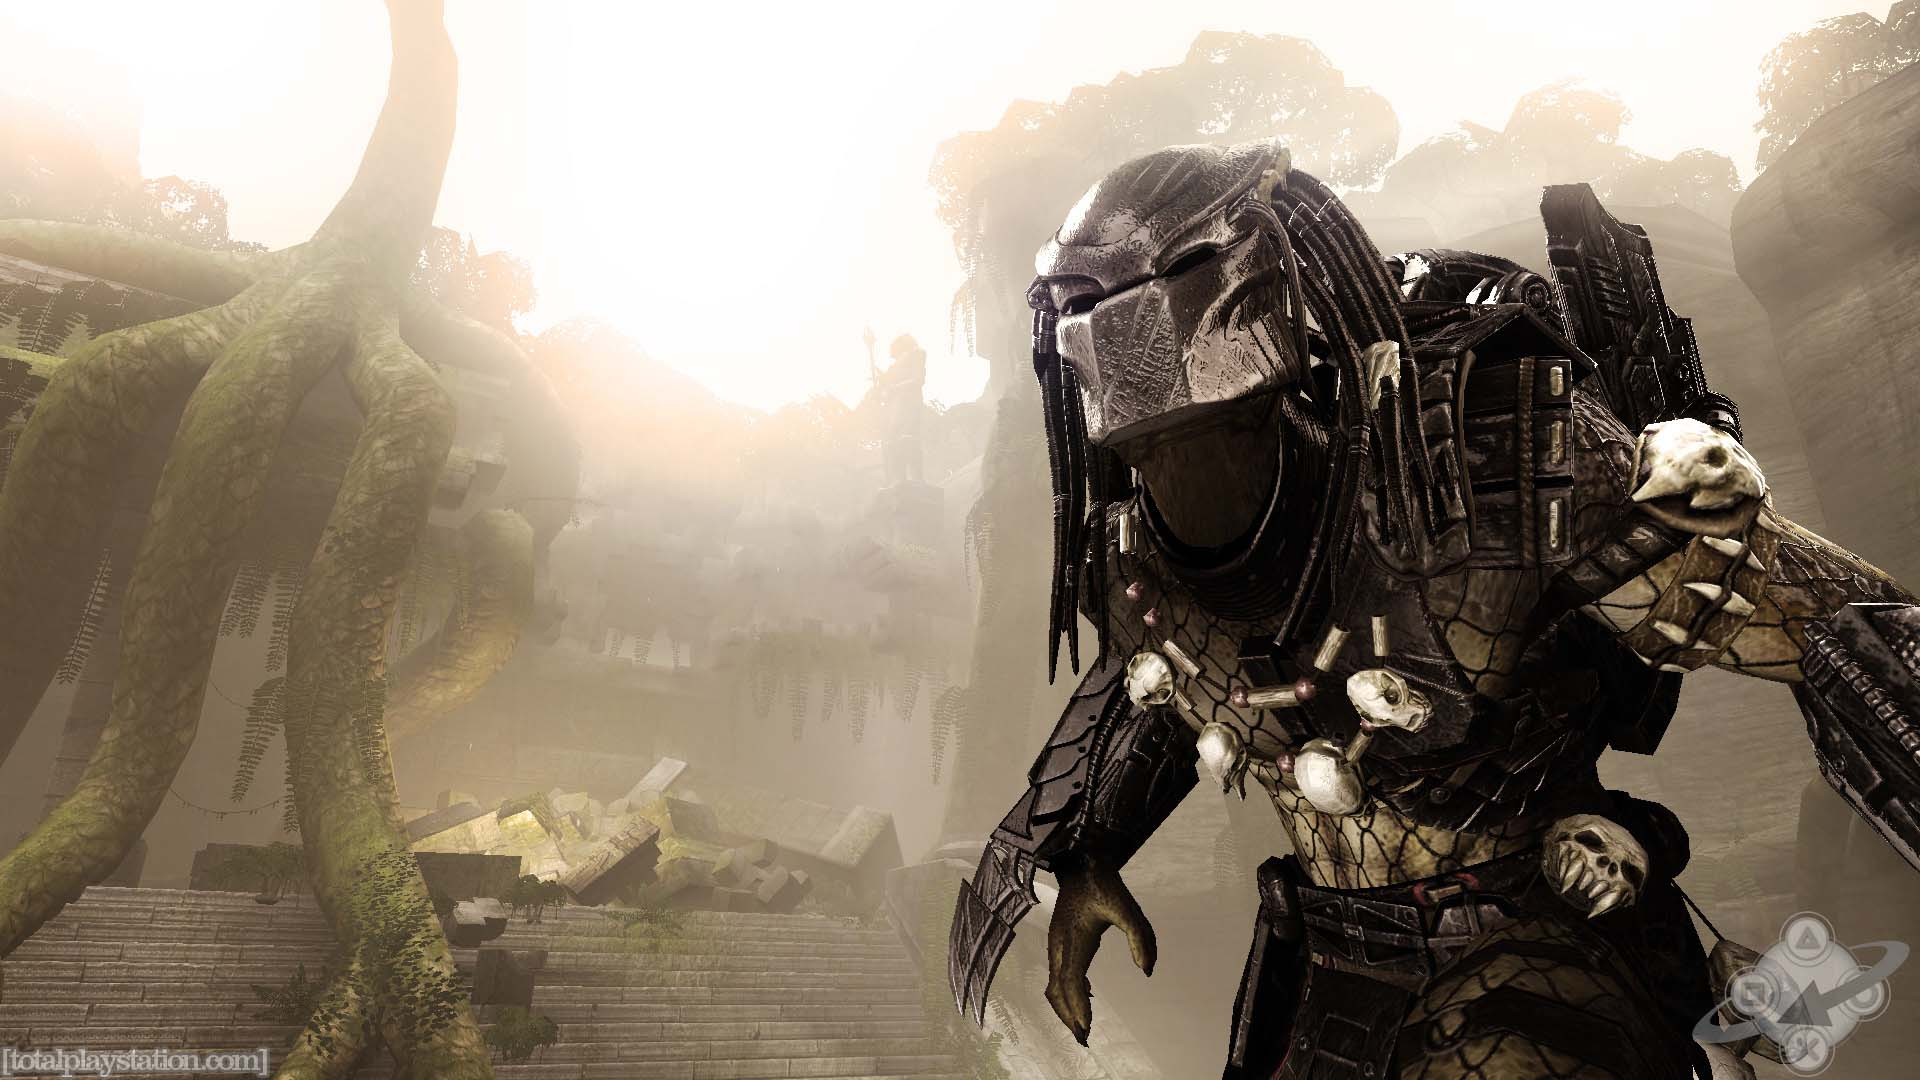 alien vs predator wallpapers - wallpaper cave